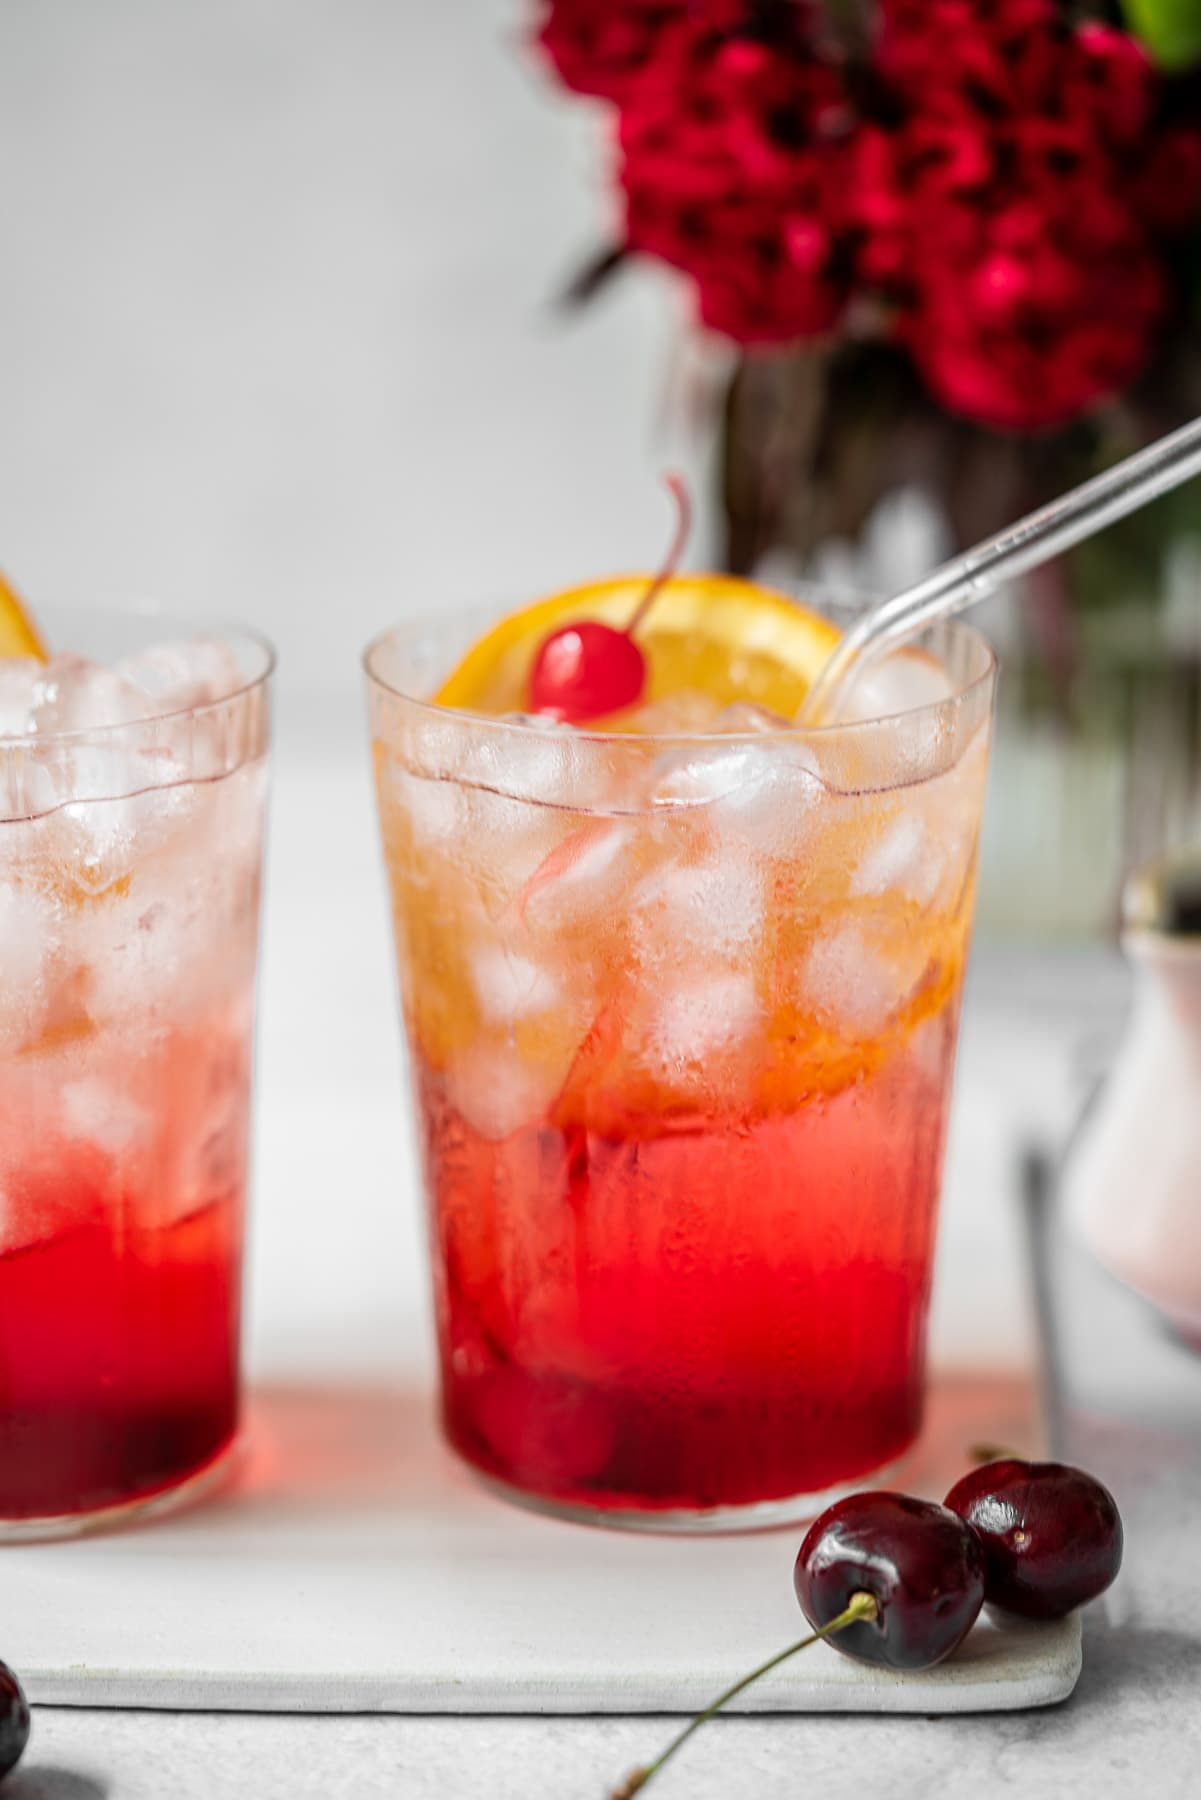 two glasses of shirley temple side by side with fresh cherries